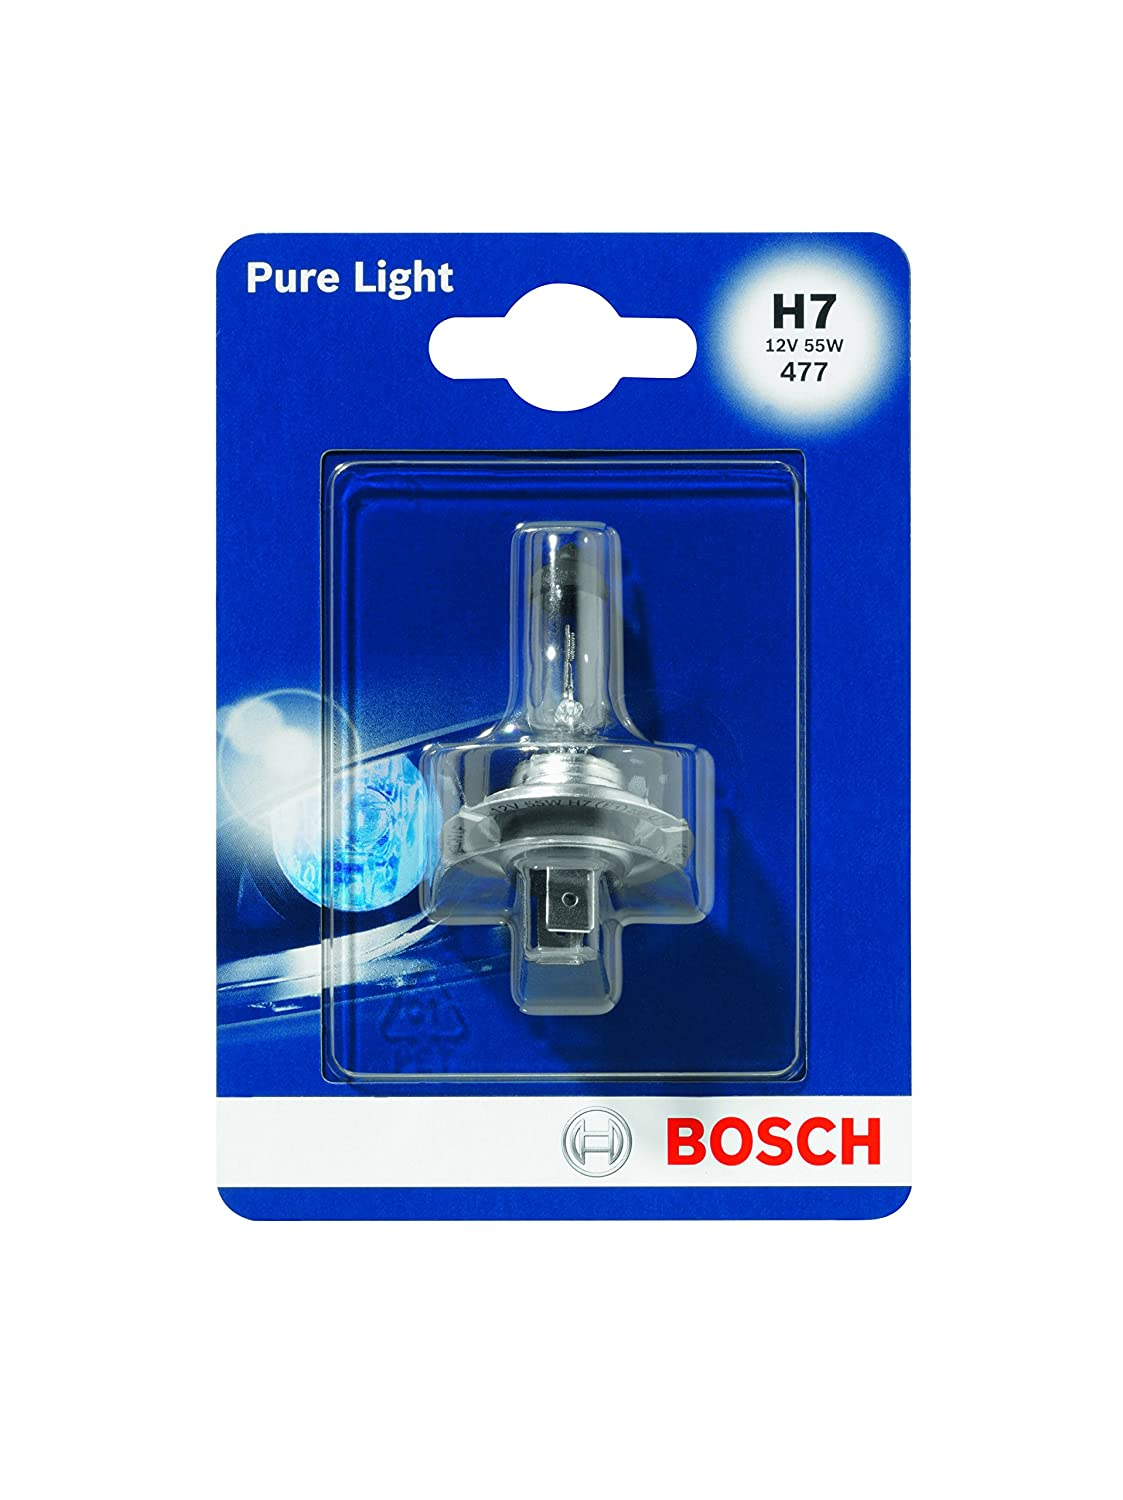 Amazon.com: H7 Halogen Bulb 1pcs 55 W PX26d 12V BOSCH Pure Light 1987301012: Automotive